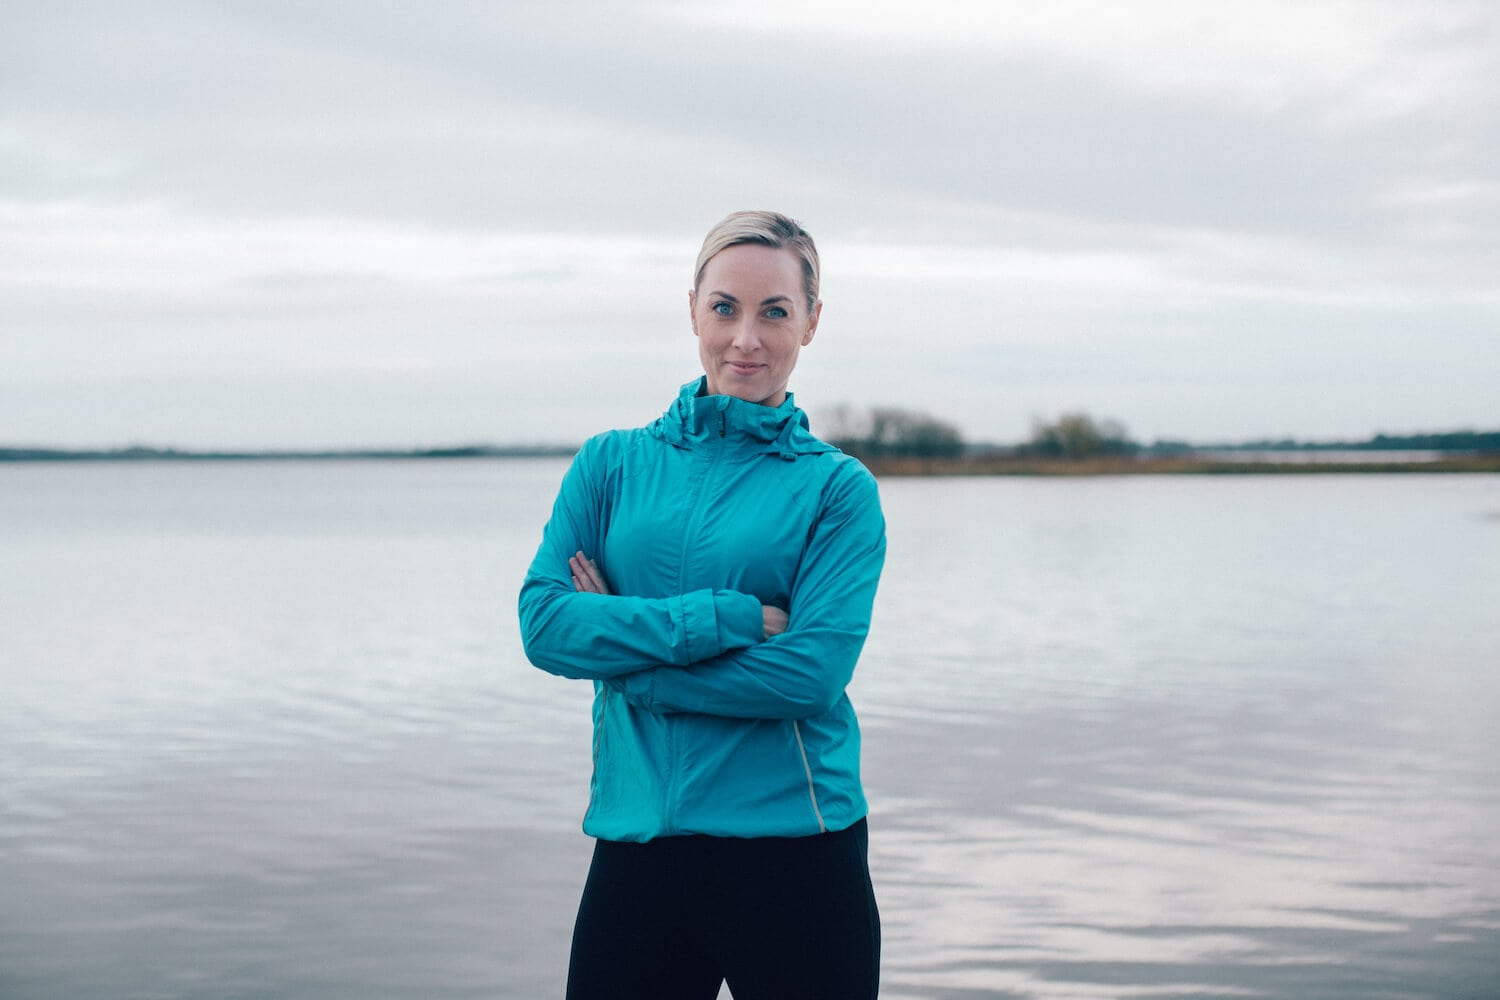 Kathryn Thomas Pure Results ireland no frontiers travel influencer wellness